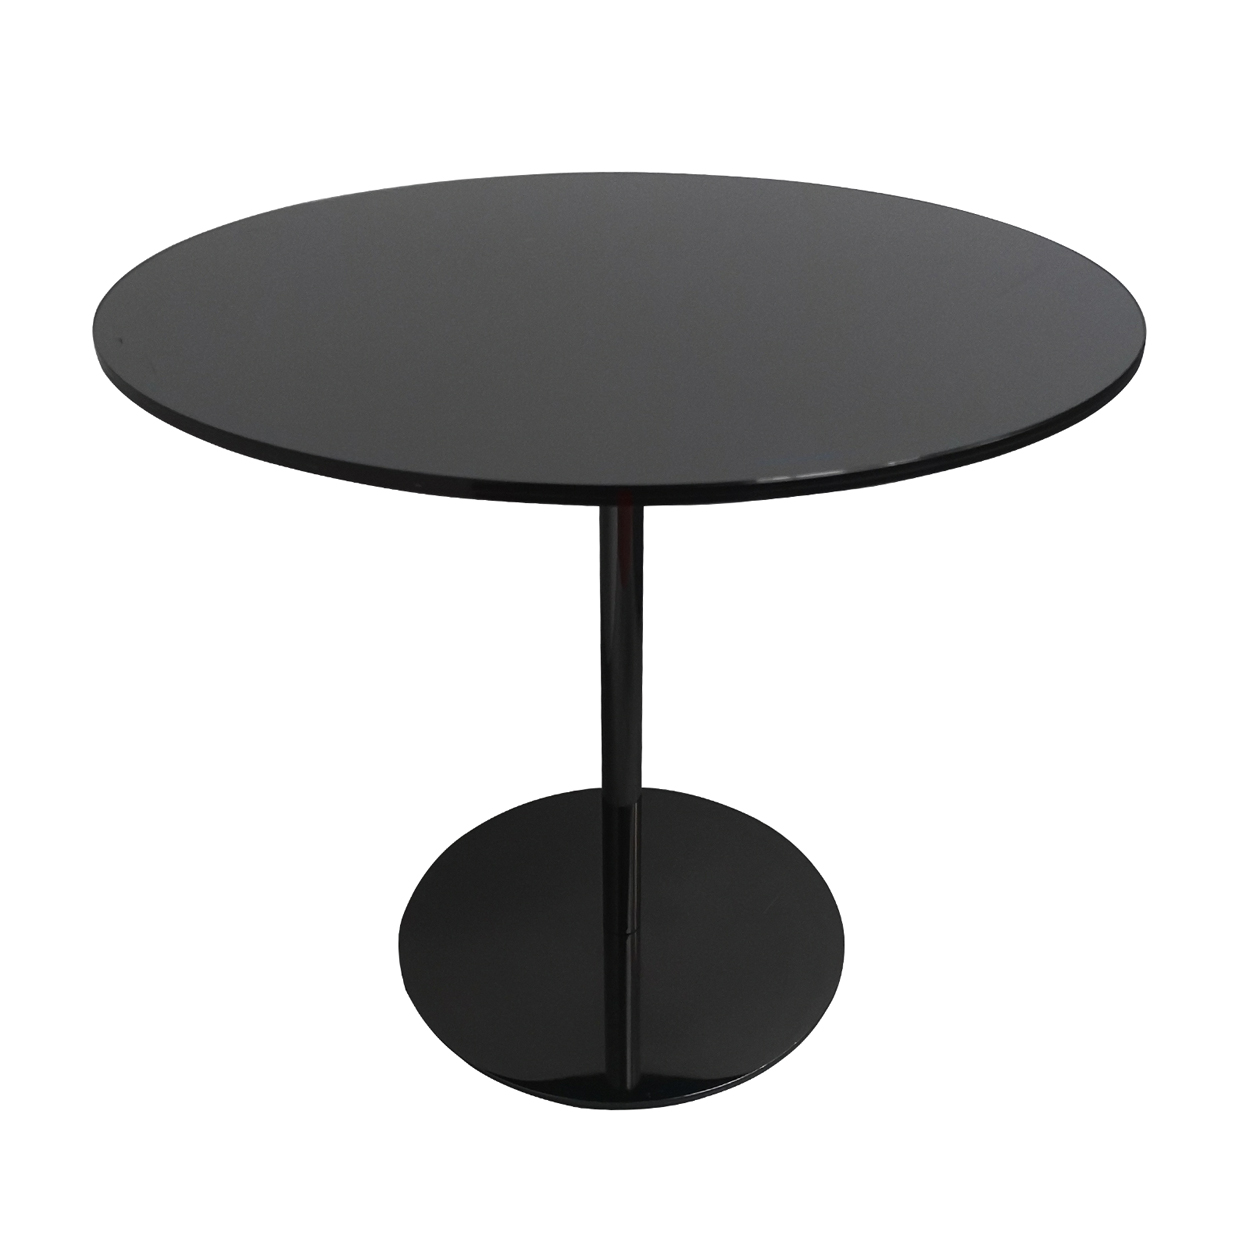 Two Design Lovers Minotti smoked glass side table